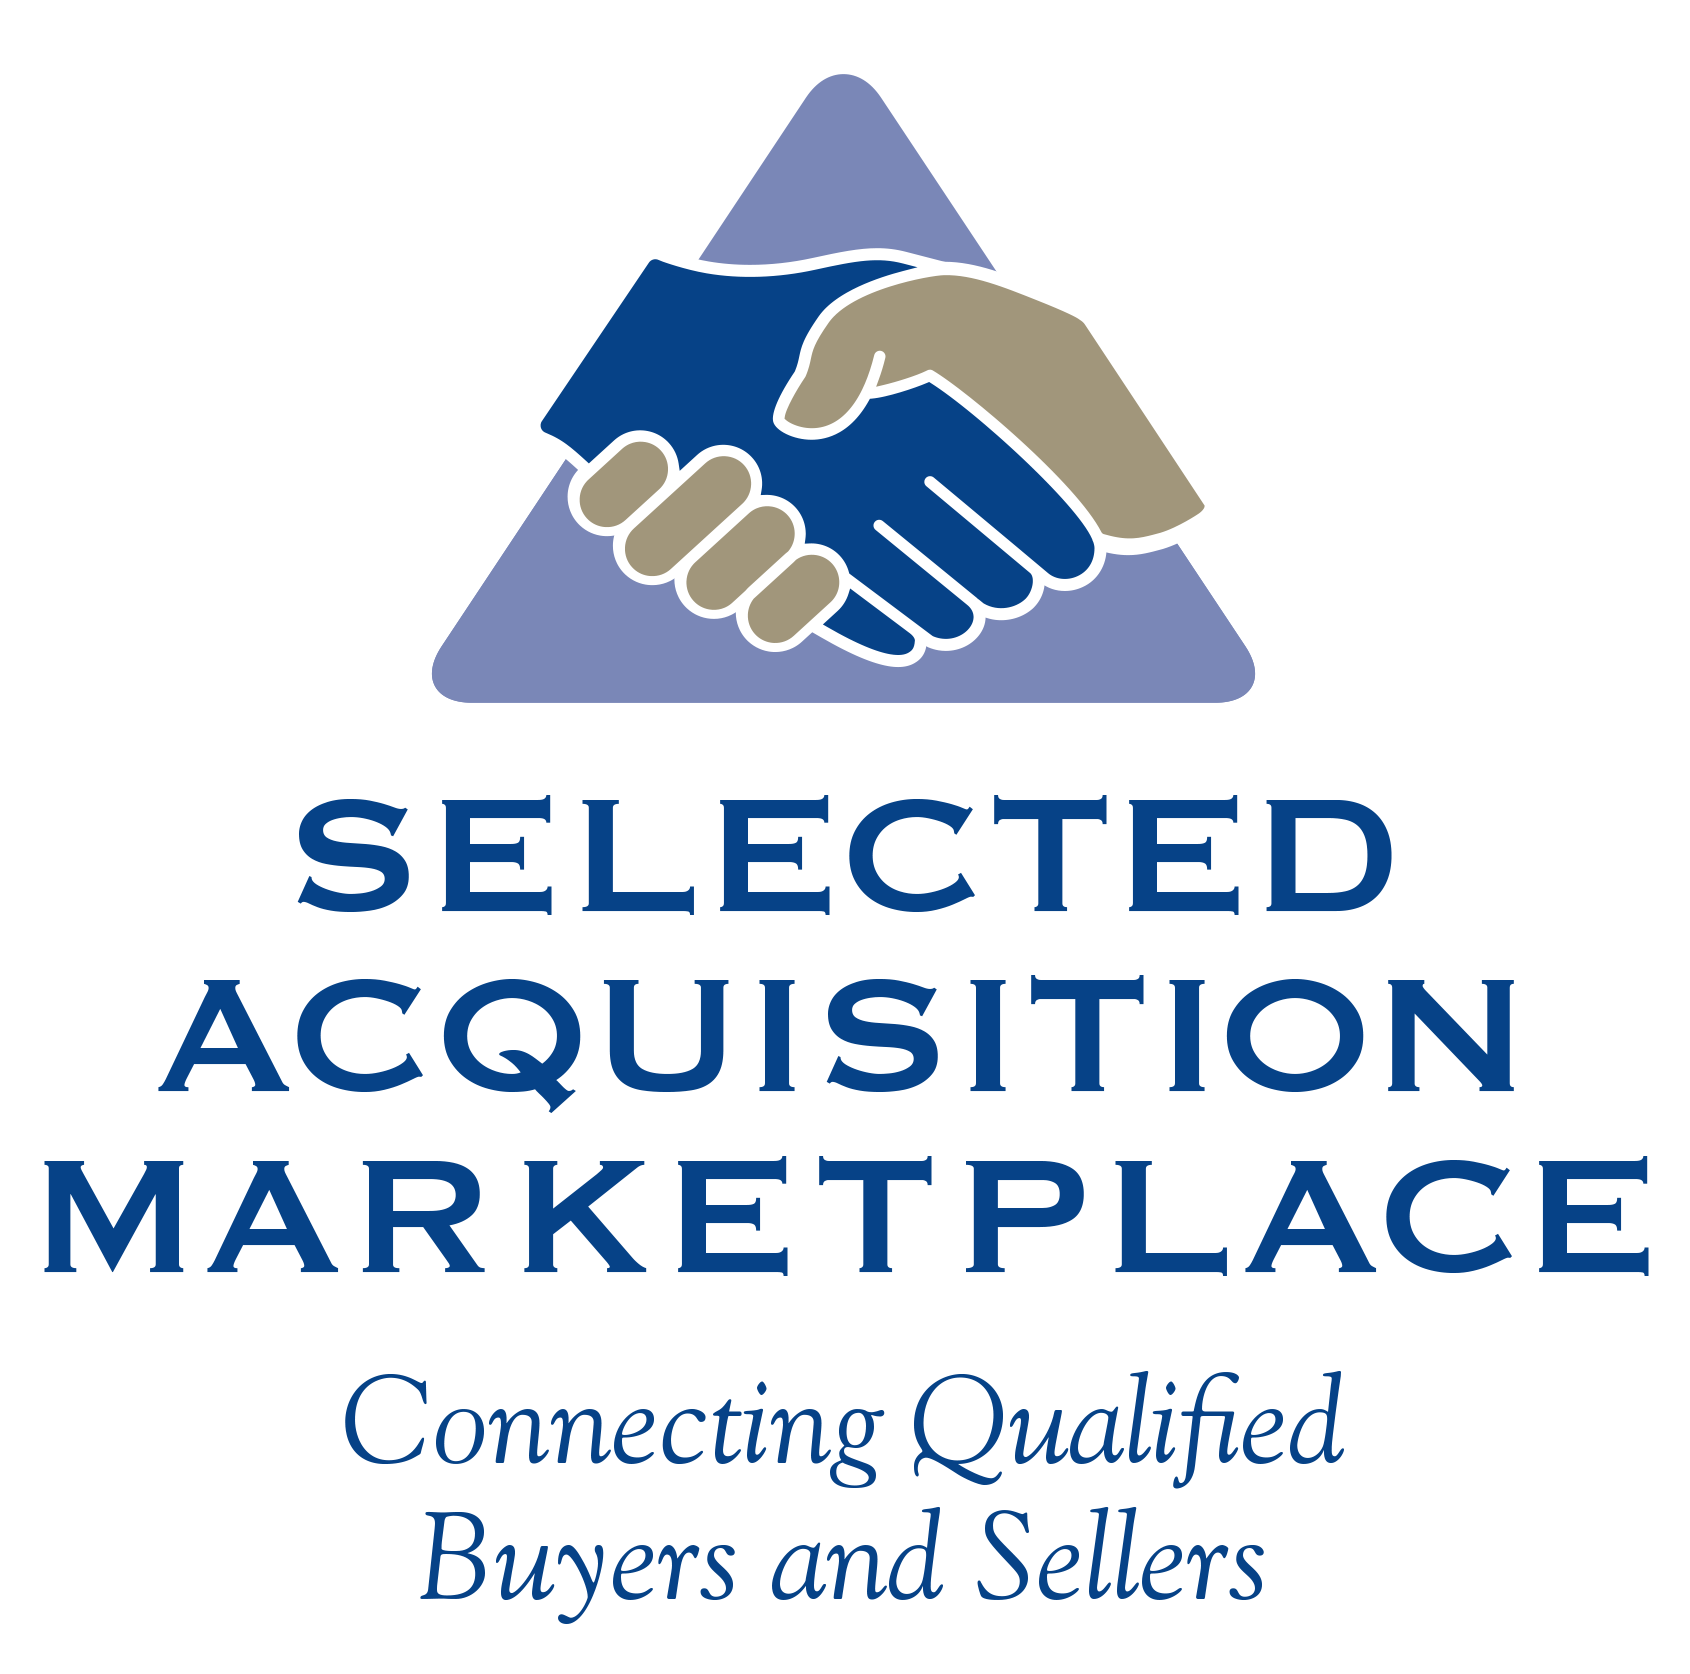 Selected Acquisition Marketplace